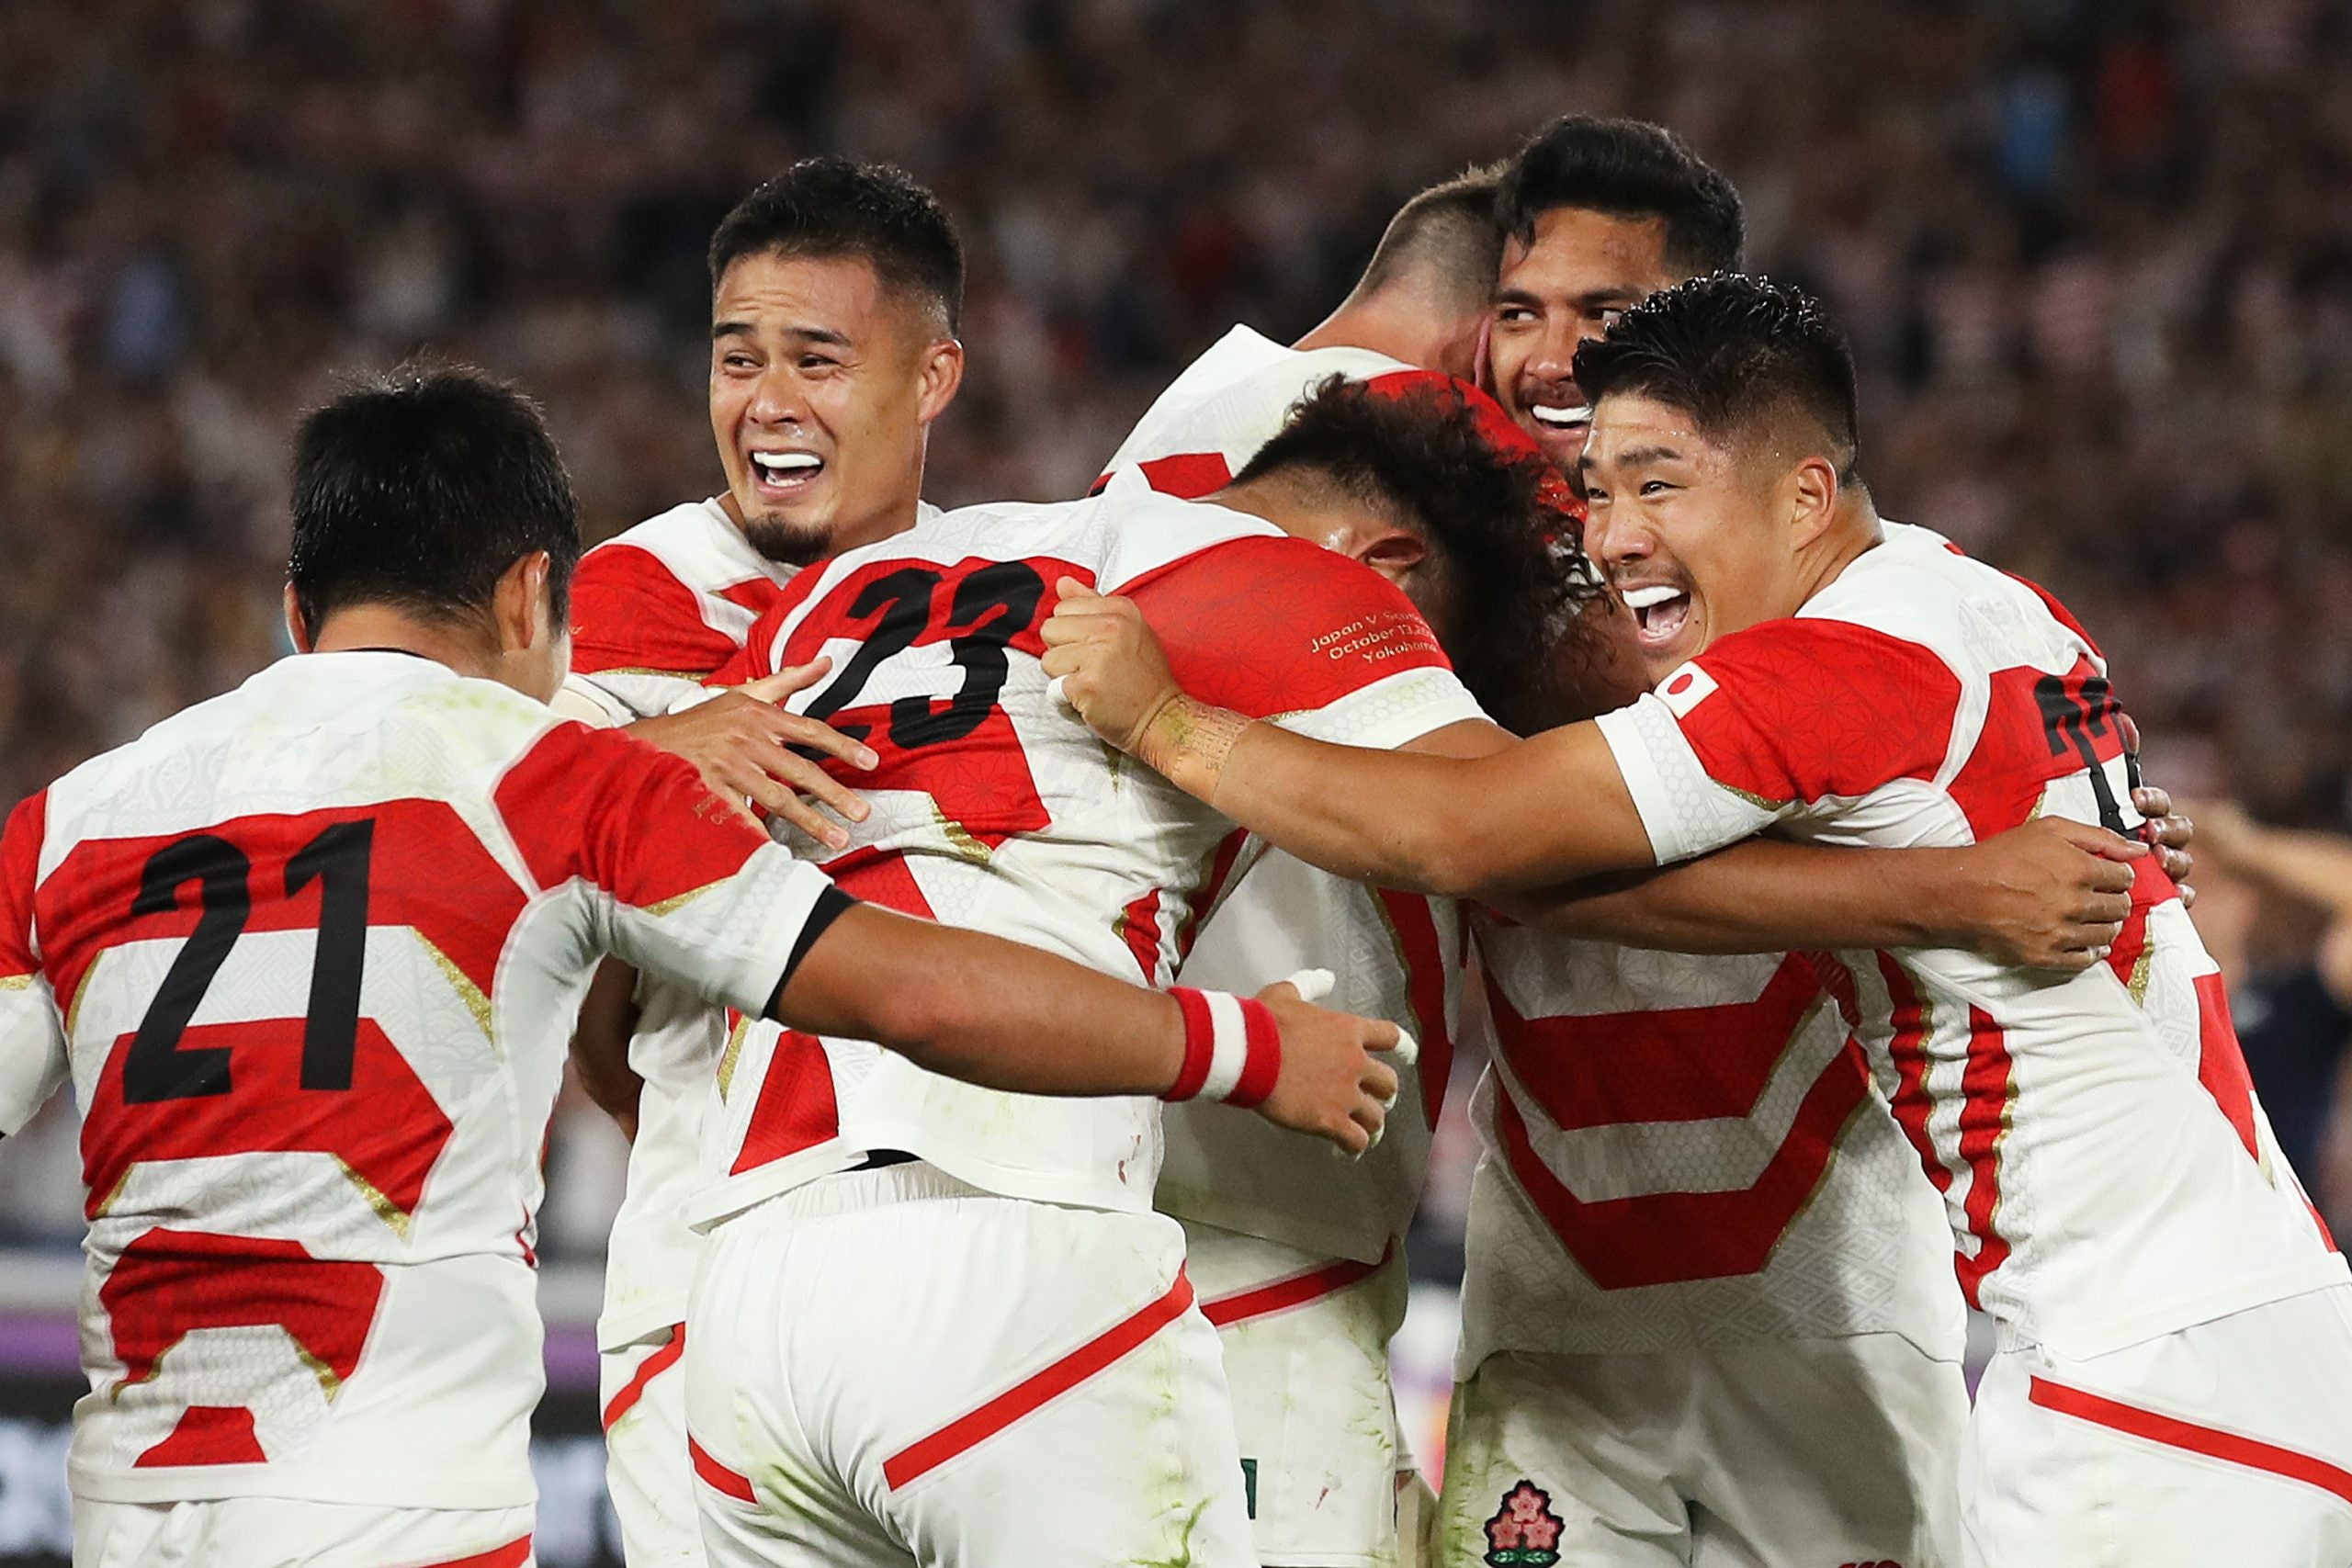 Japan's Rugby World Cup is a glorious reminder that sport has the power to tear down borders